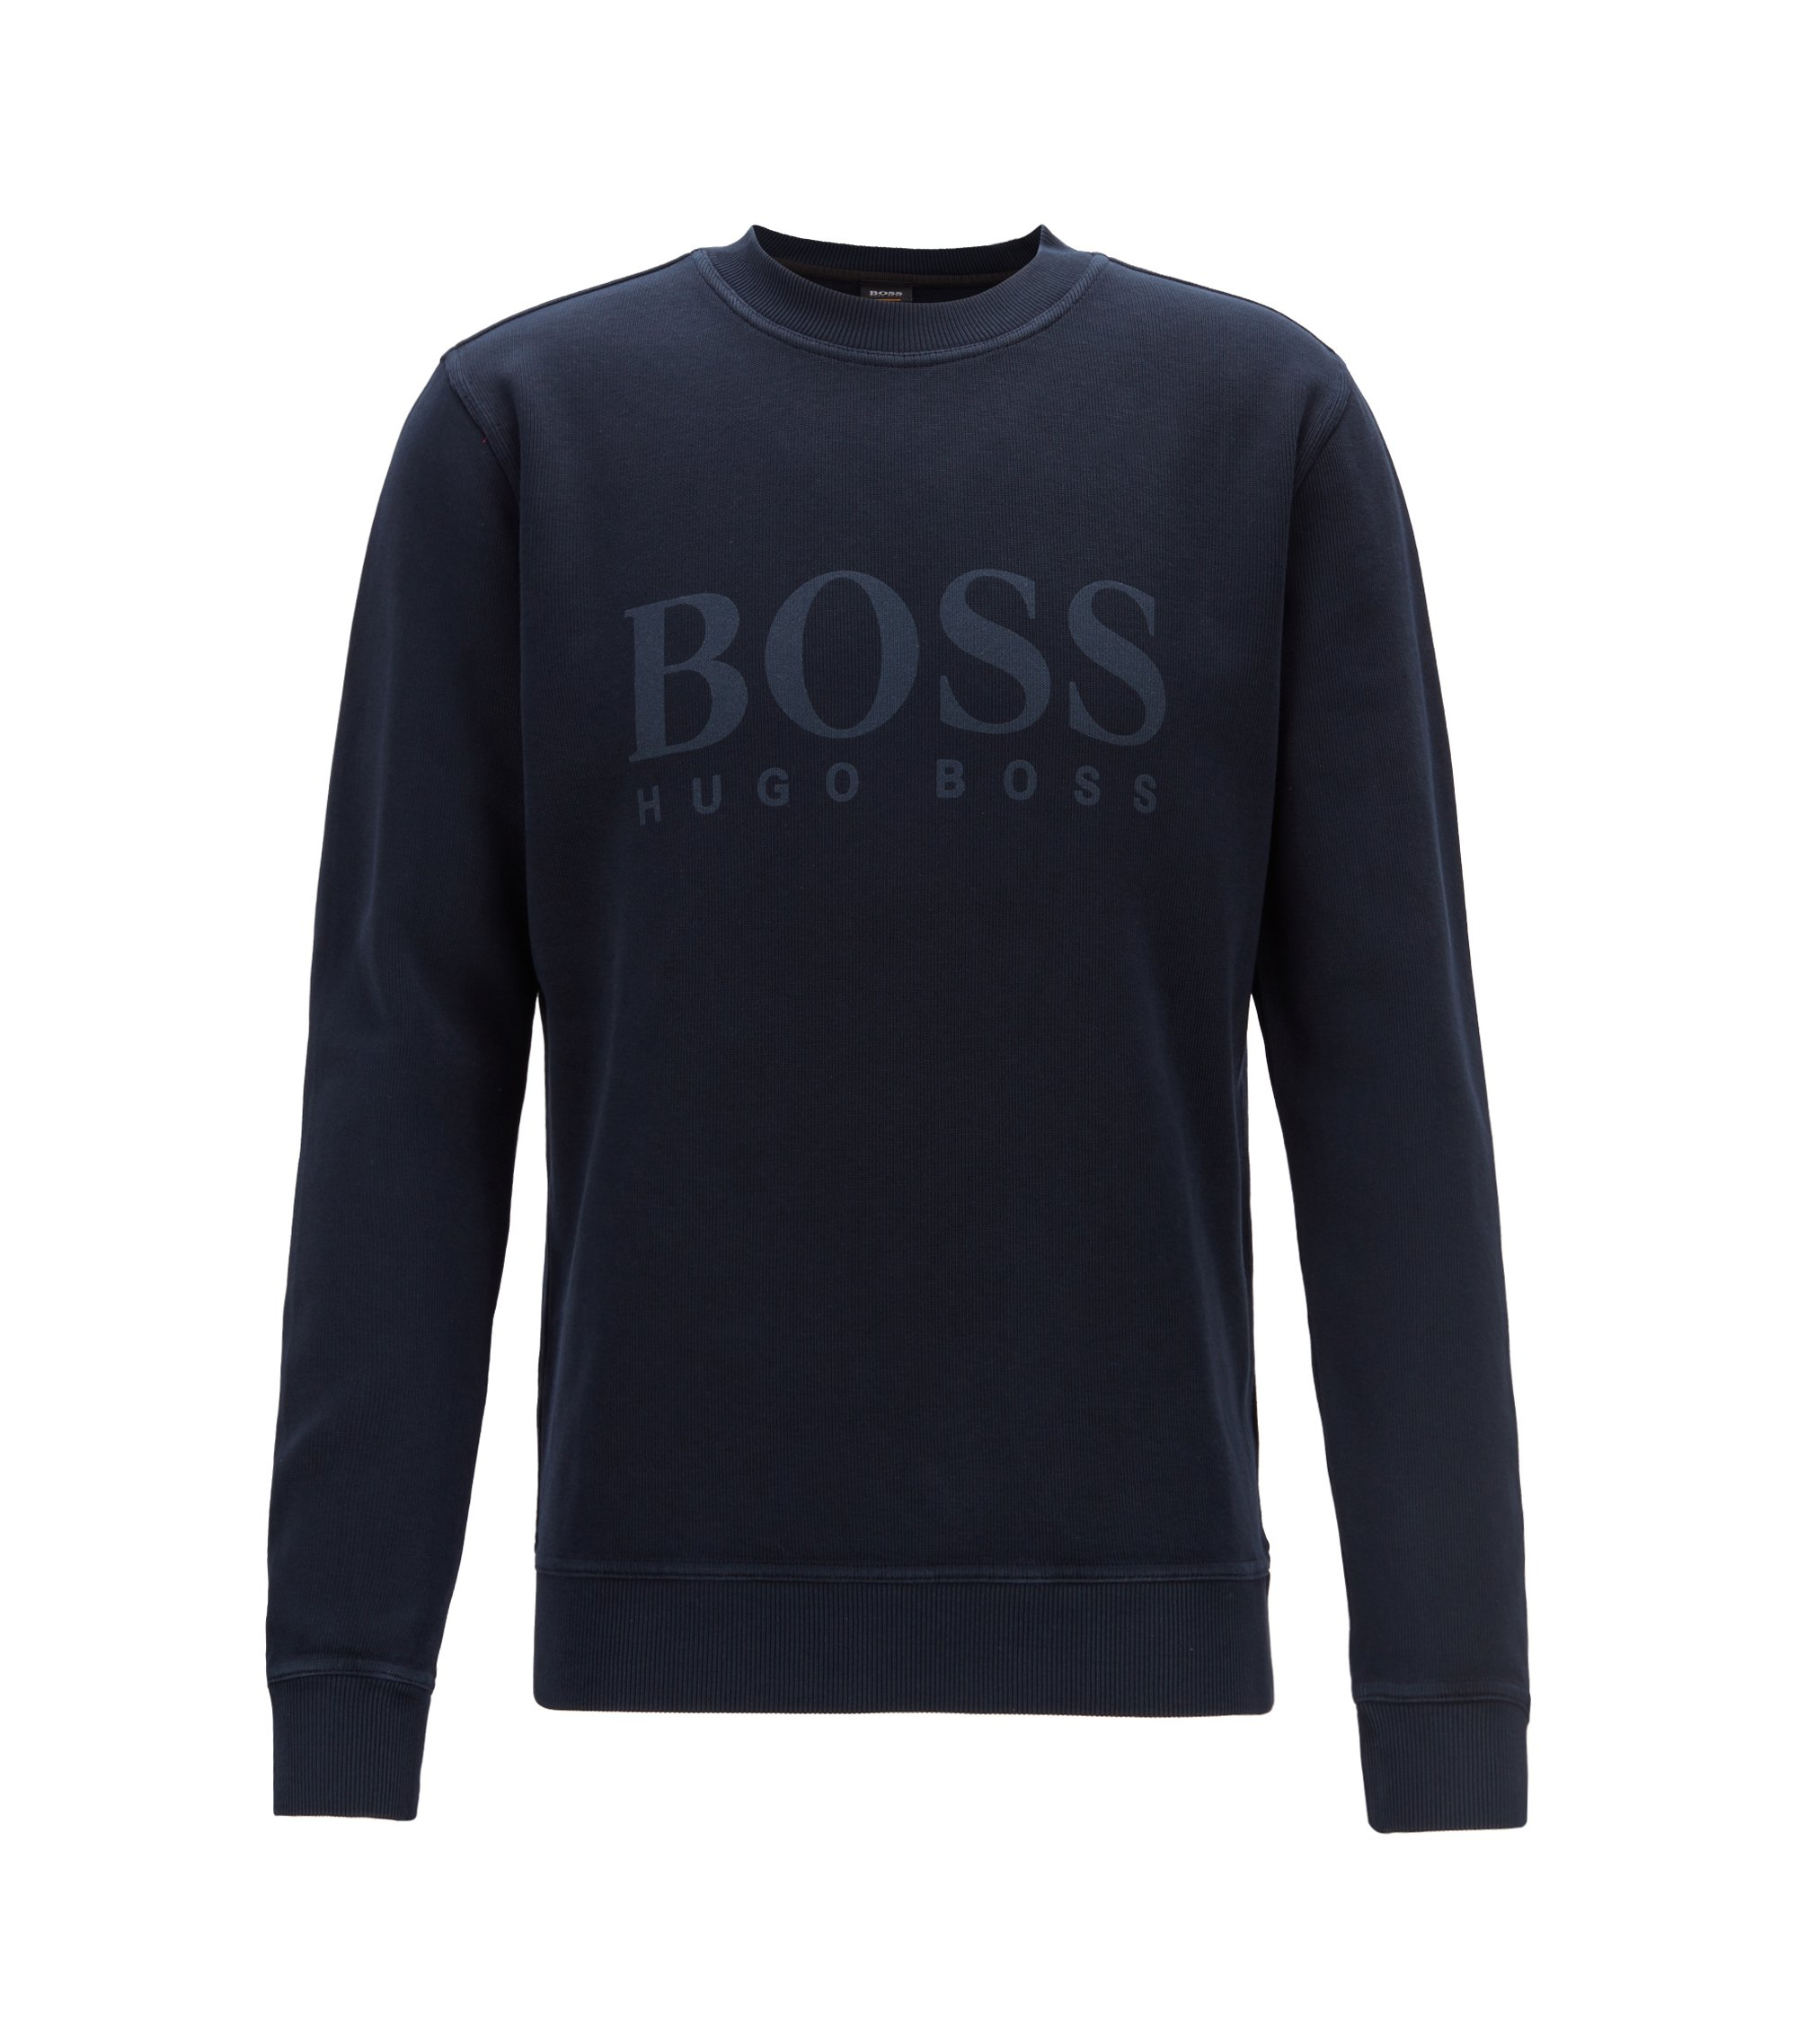 Relaxed-fit sweater van Frans ribmateriaal met een transparant logo, Donkerblauw